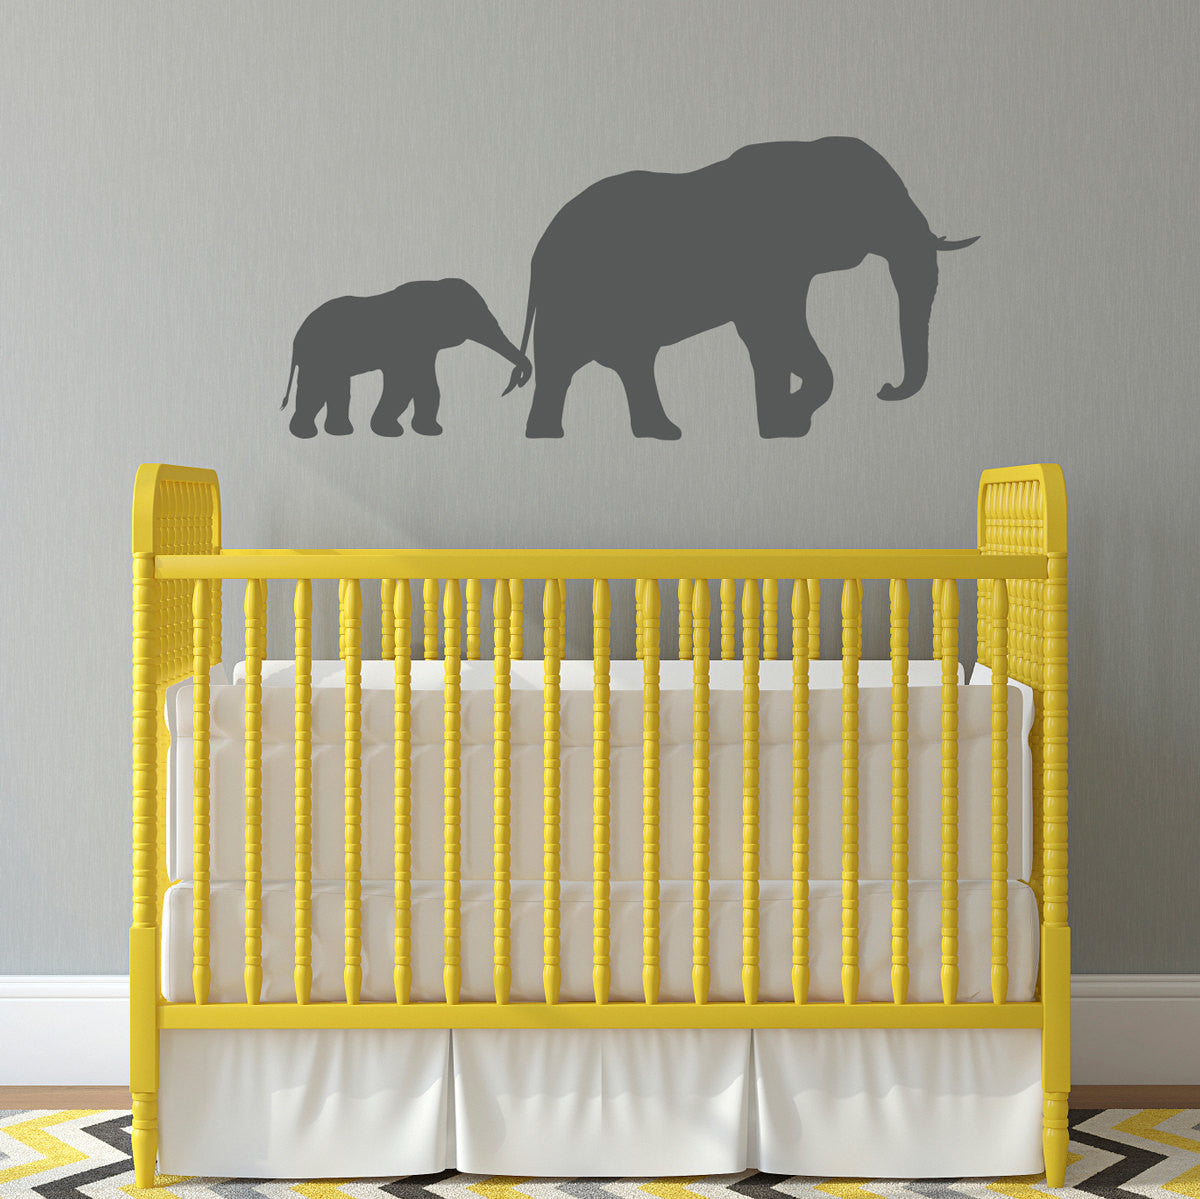 Baby wall decal dictionary definition decal a precious gift elephant and baby wall decal large amipublicfo Images